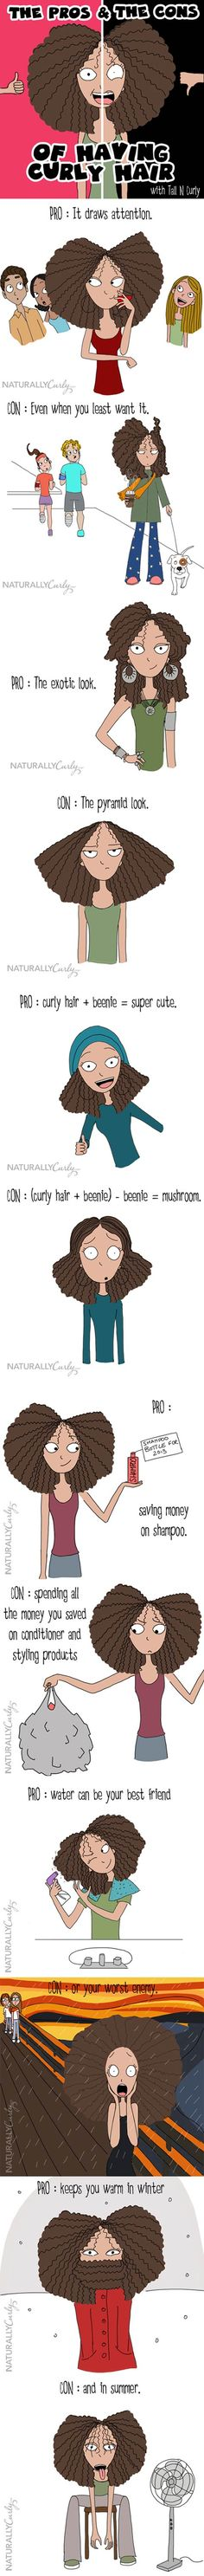 The pros and cons of curly hair.